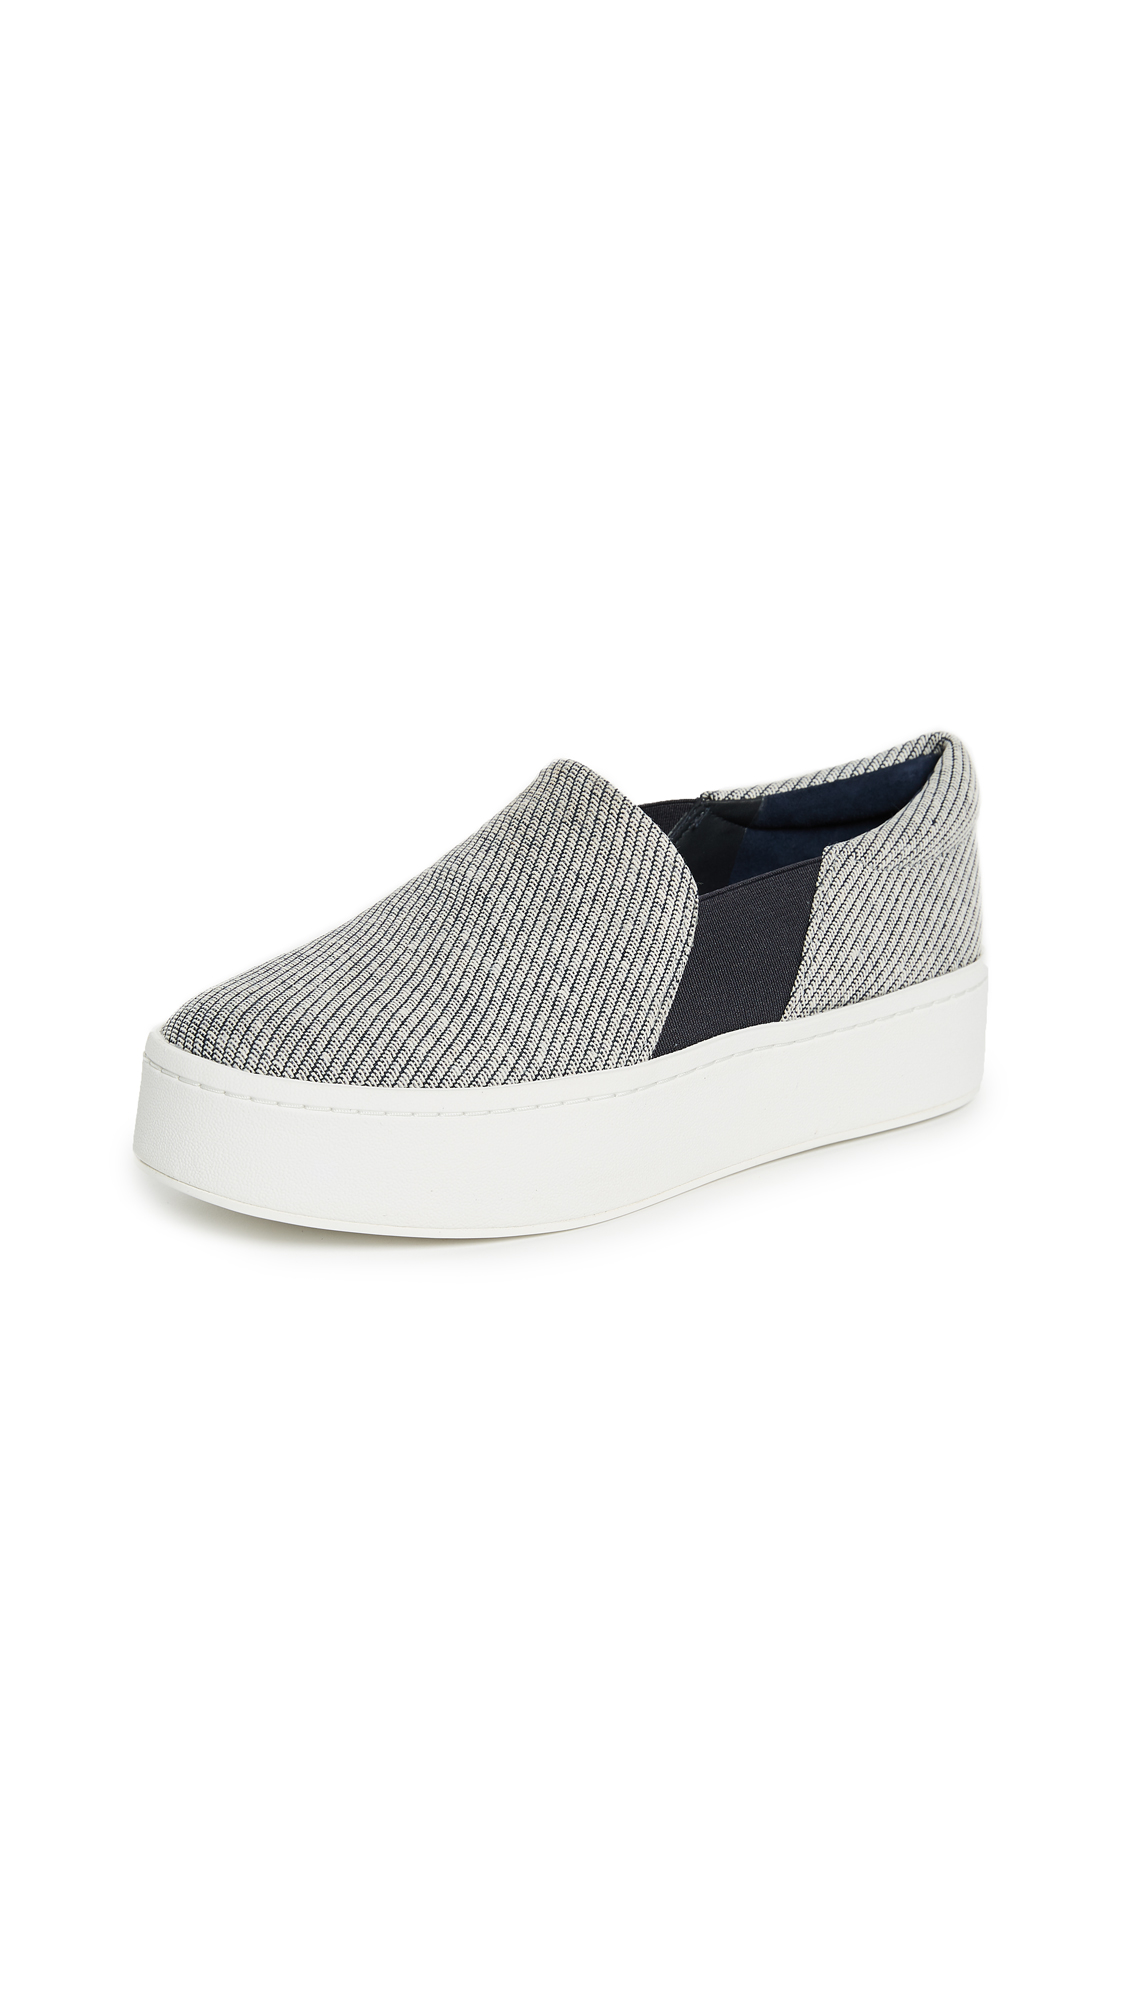 Vince Warren Platform Sneakers - Coast/White